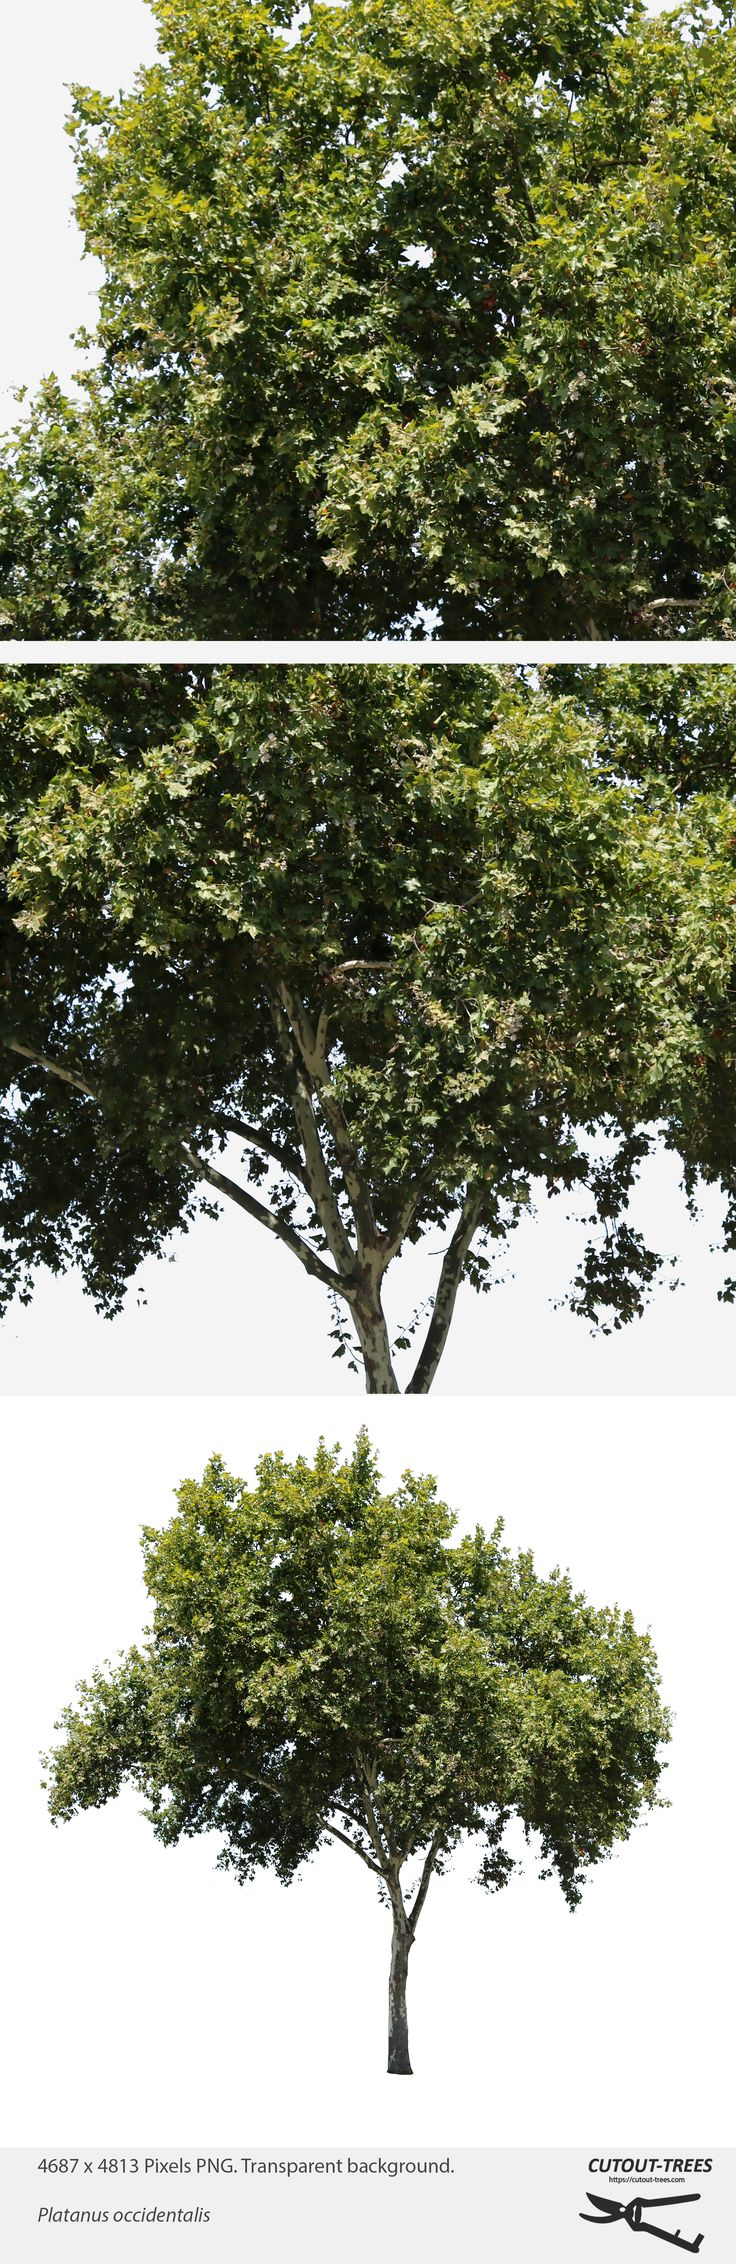 4687 x 4813 Pixels. PNG. Transparent background.  Platanus occidentalis  American Sycamore, American Planetree, Occidental Plane;  Native to North America. Usually called sycamore in North America. In its native range, it is often found in riparian and wetland areas. The sycamore tree is able to endure the urban environment and is extensively planted as a shade tree in streets and parks.